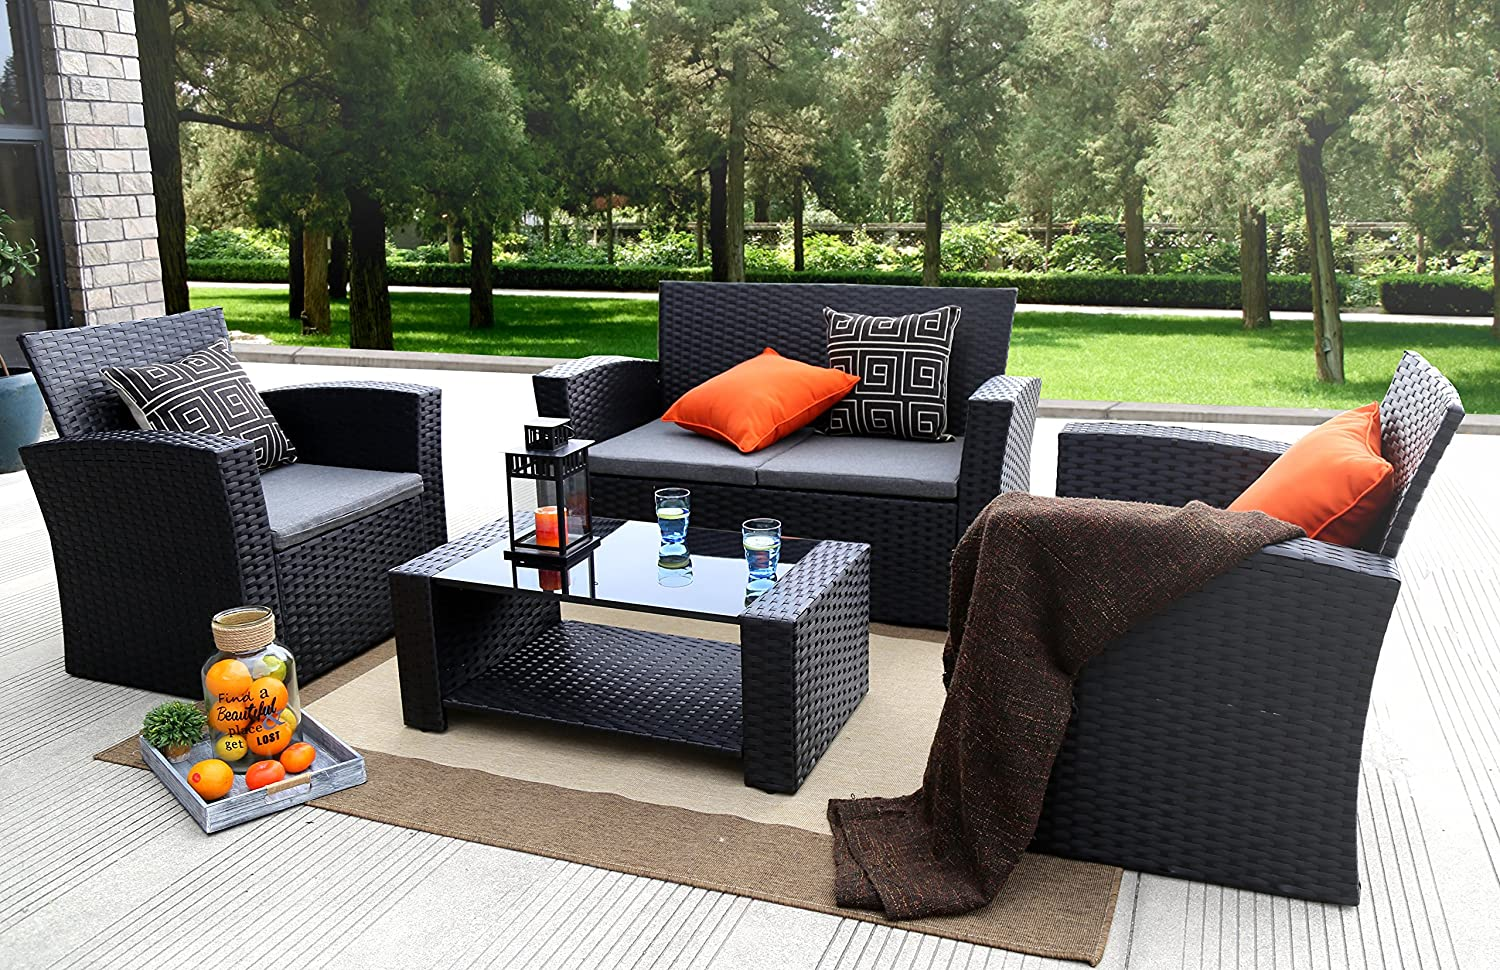 Amazon.com: Baner Garden (N87) 4 Pieces Outdoor Furniture Complete Patio  Cushion Wicker P.E Rattan Garden Set, Full, Black: Kitchen U0026 Dining